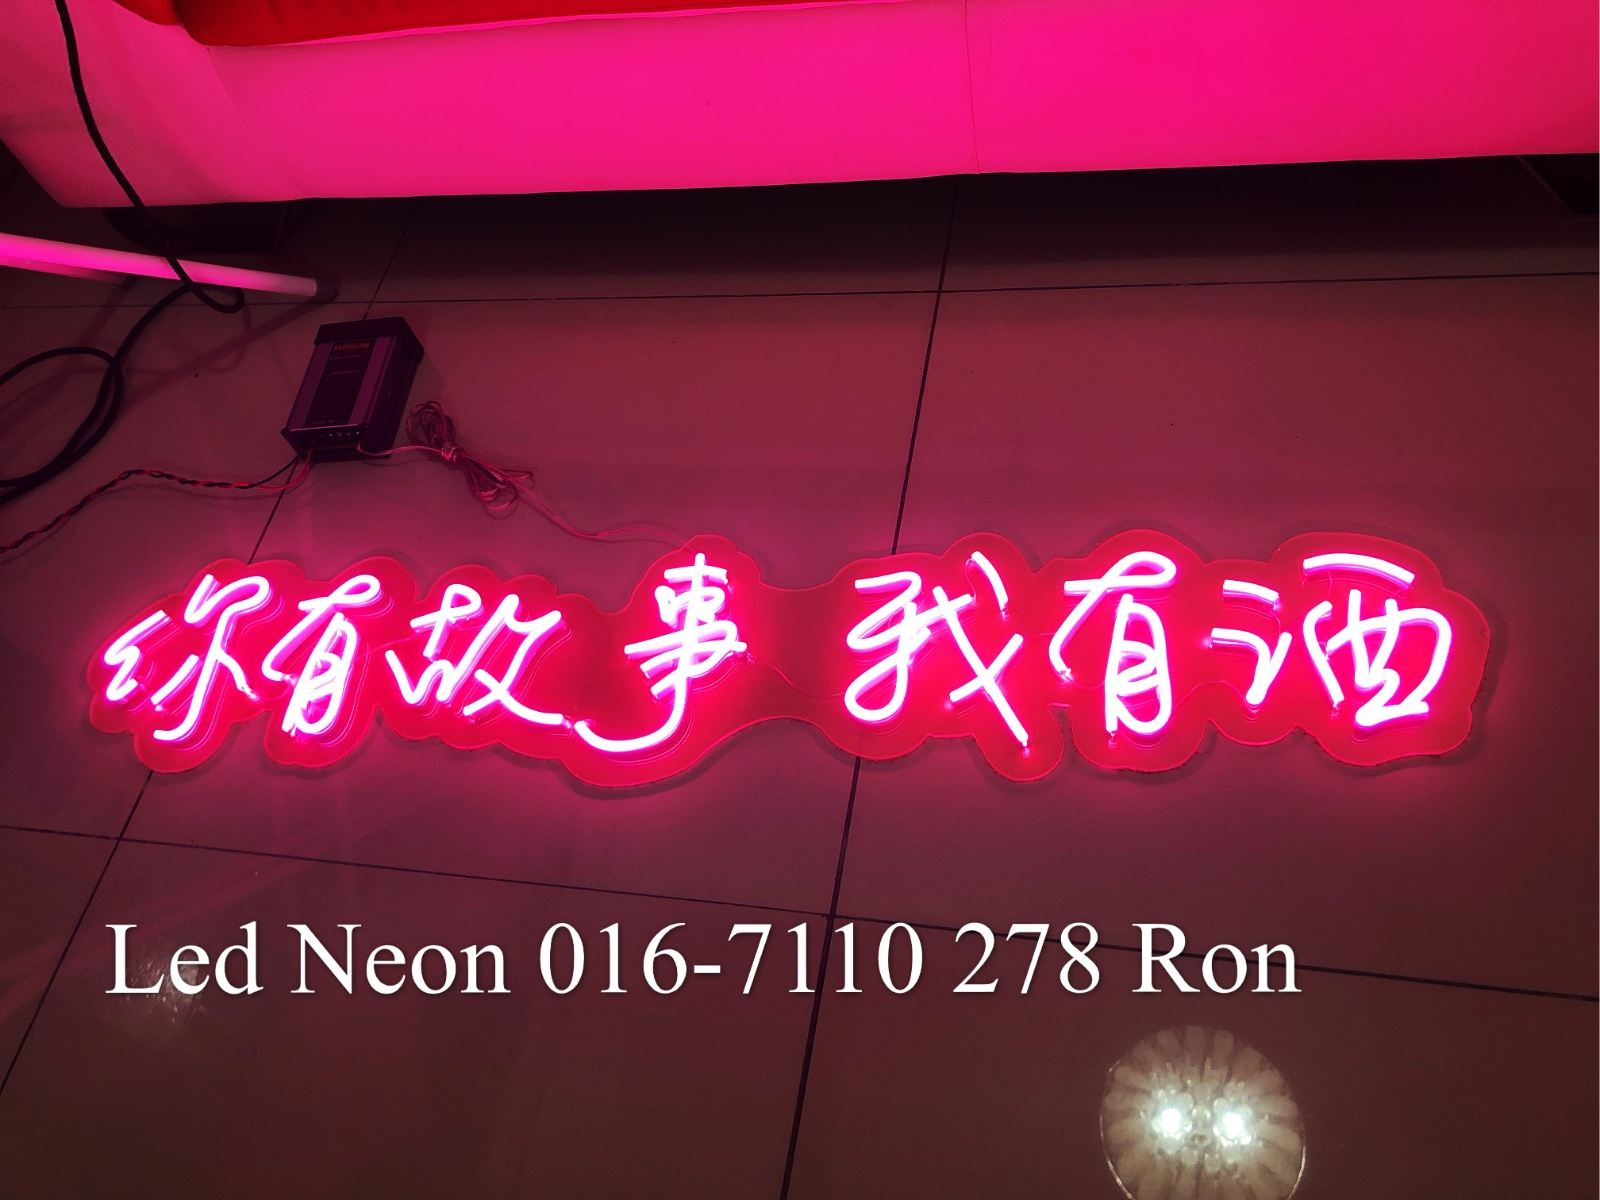 LED NEON (CHINESE WORDING)